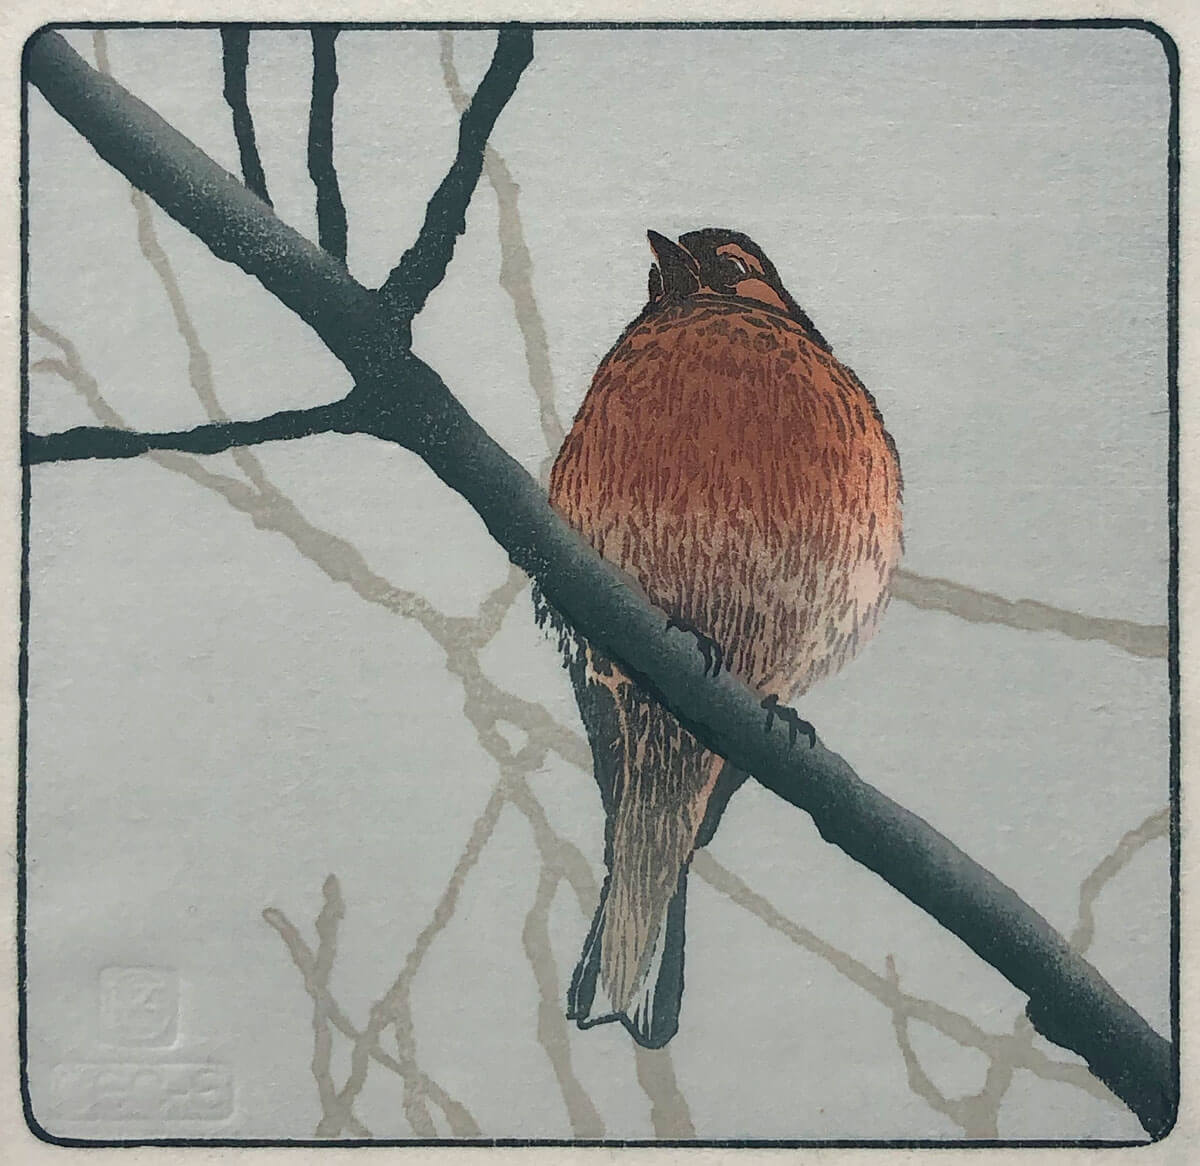 Chaffinch woodblock print by Claire Cameron-Smith